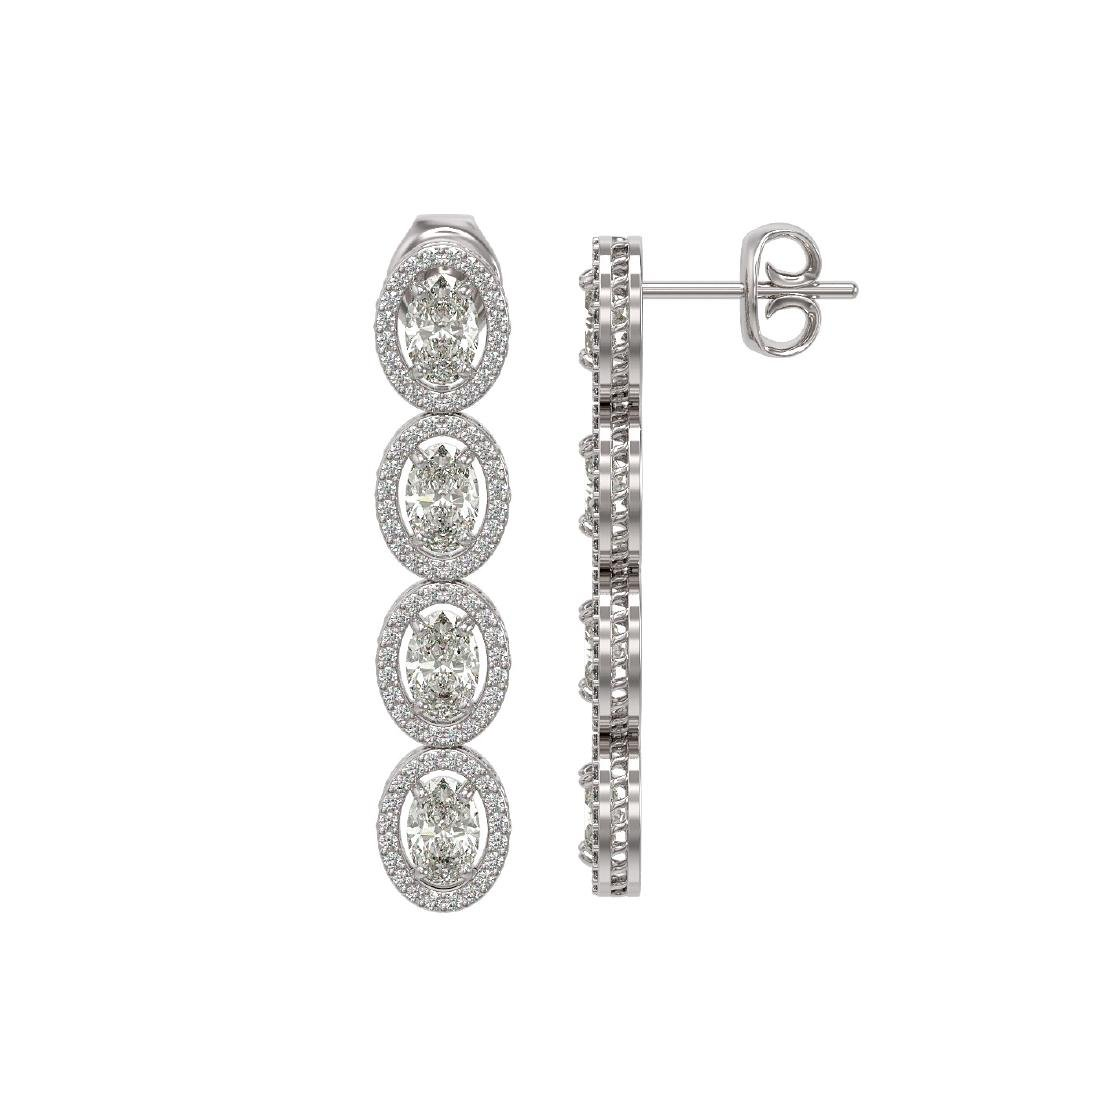 5.33 CTW Oval Diamond Designer Earrings 18K White Gold - 2